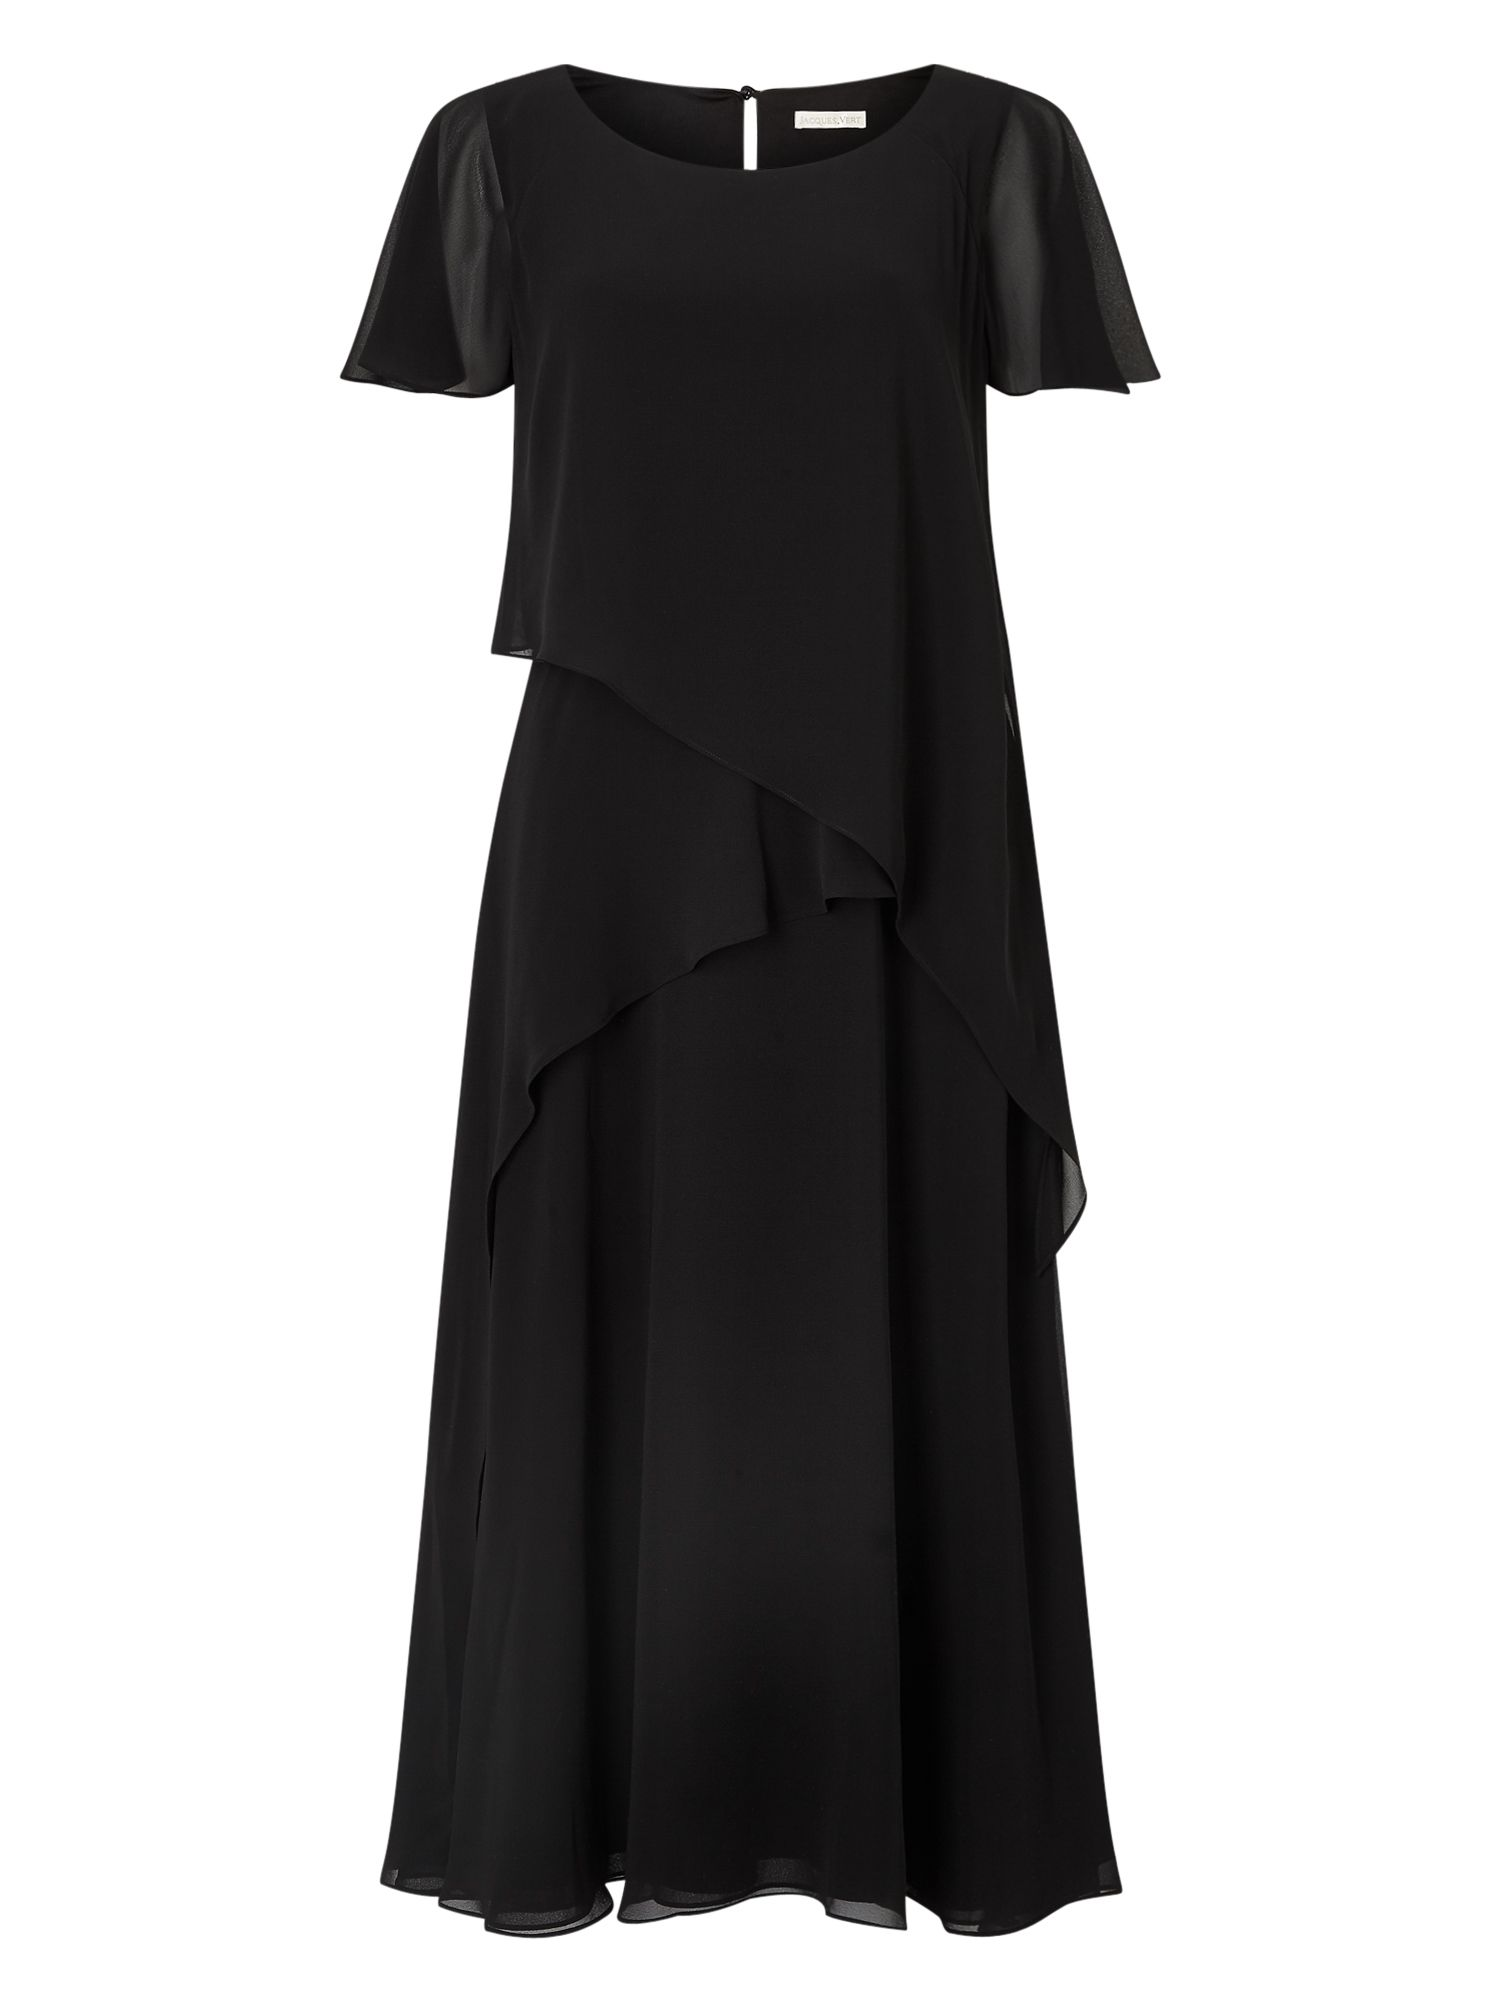 Jacques Vert Soft Tie Detail Dress, Black